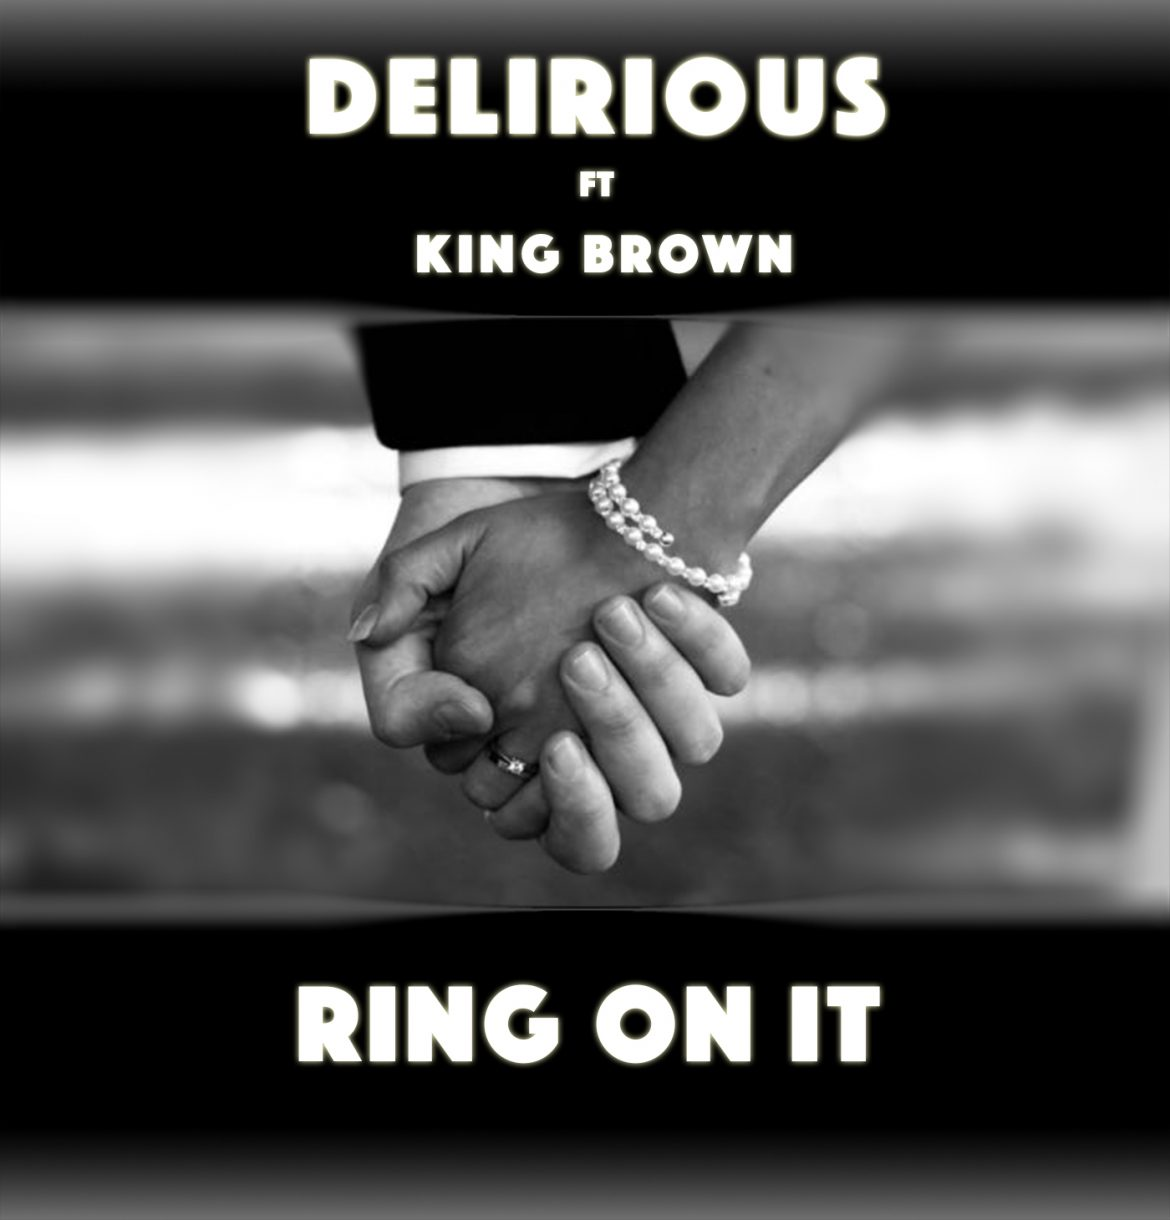 Delirious ft King Brown - Ring On It